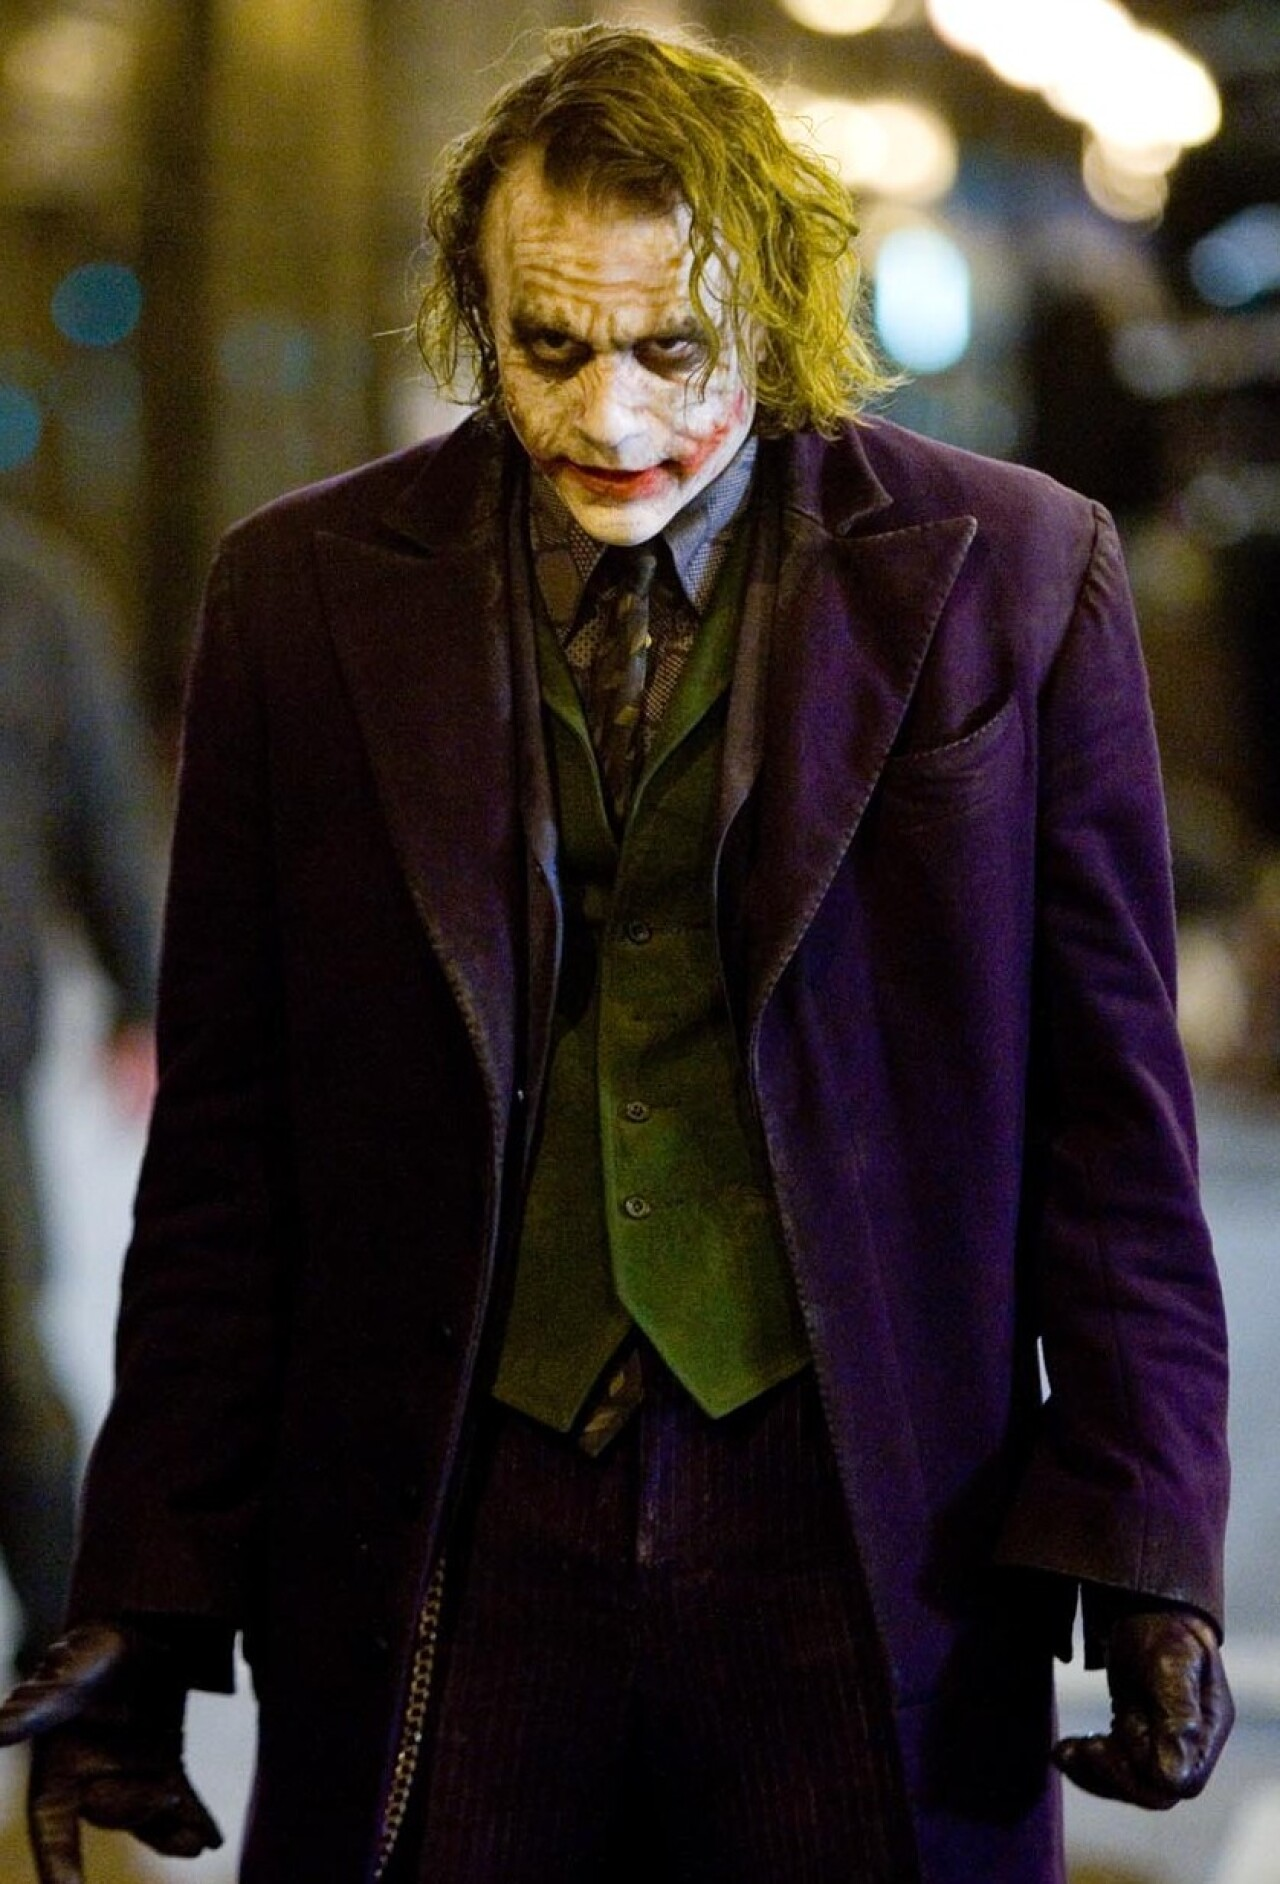 Image result for The Joker wiki